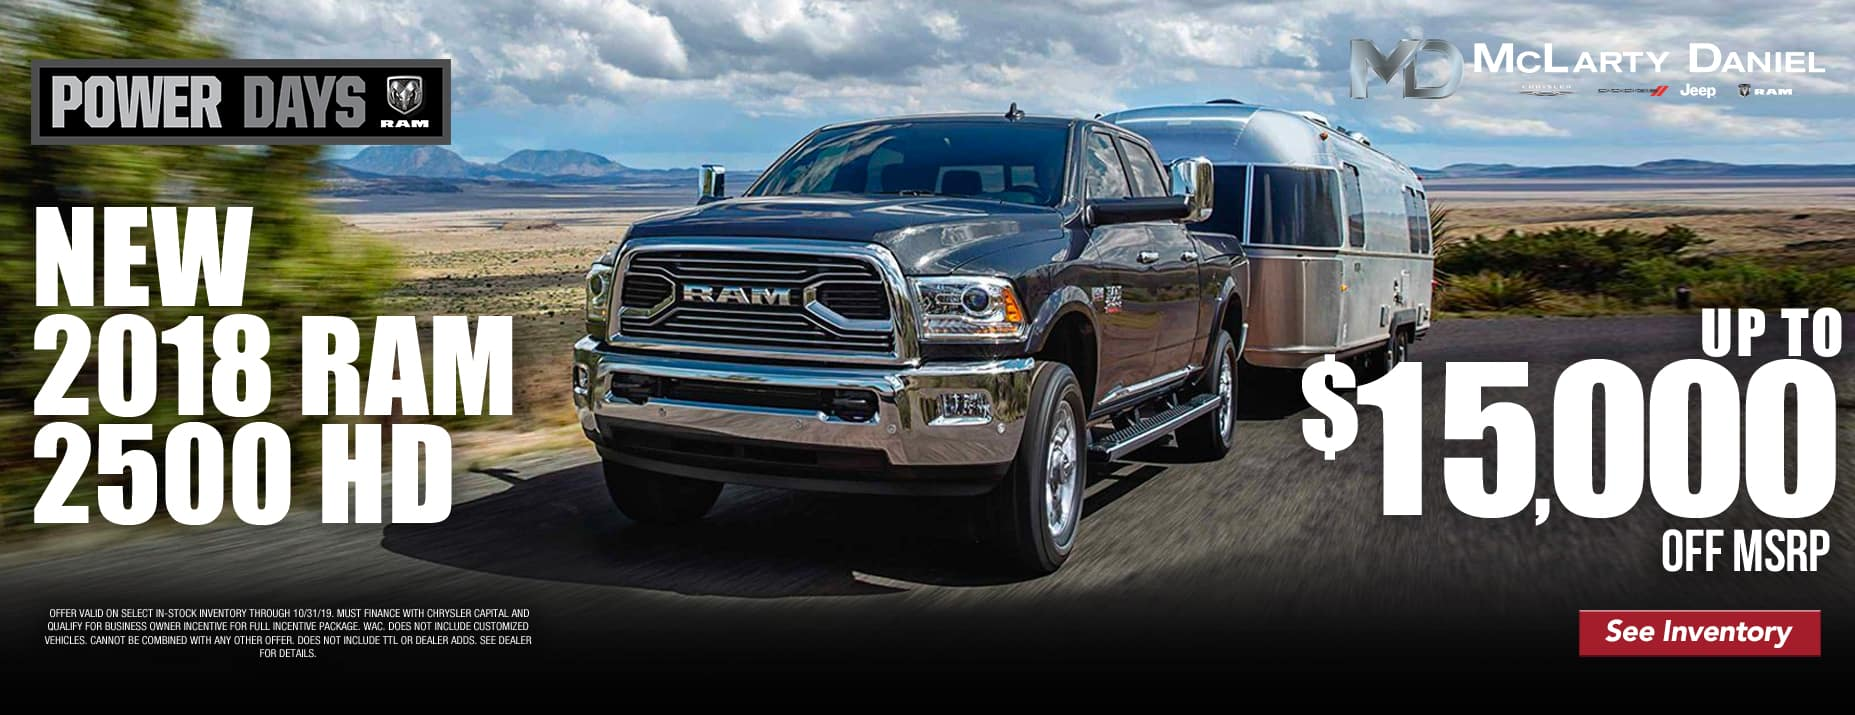 2018 Ram 2500 - Up to $15,000 off select 2018 RAM 2500!